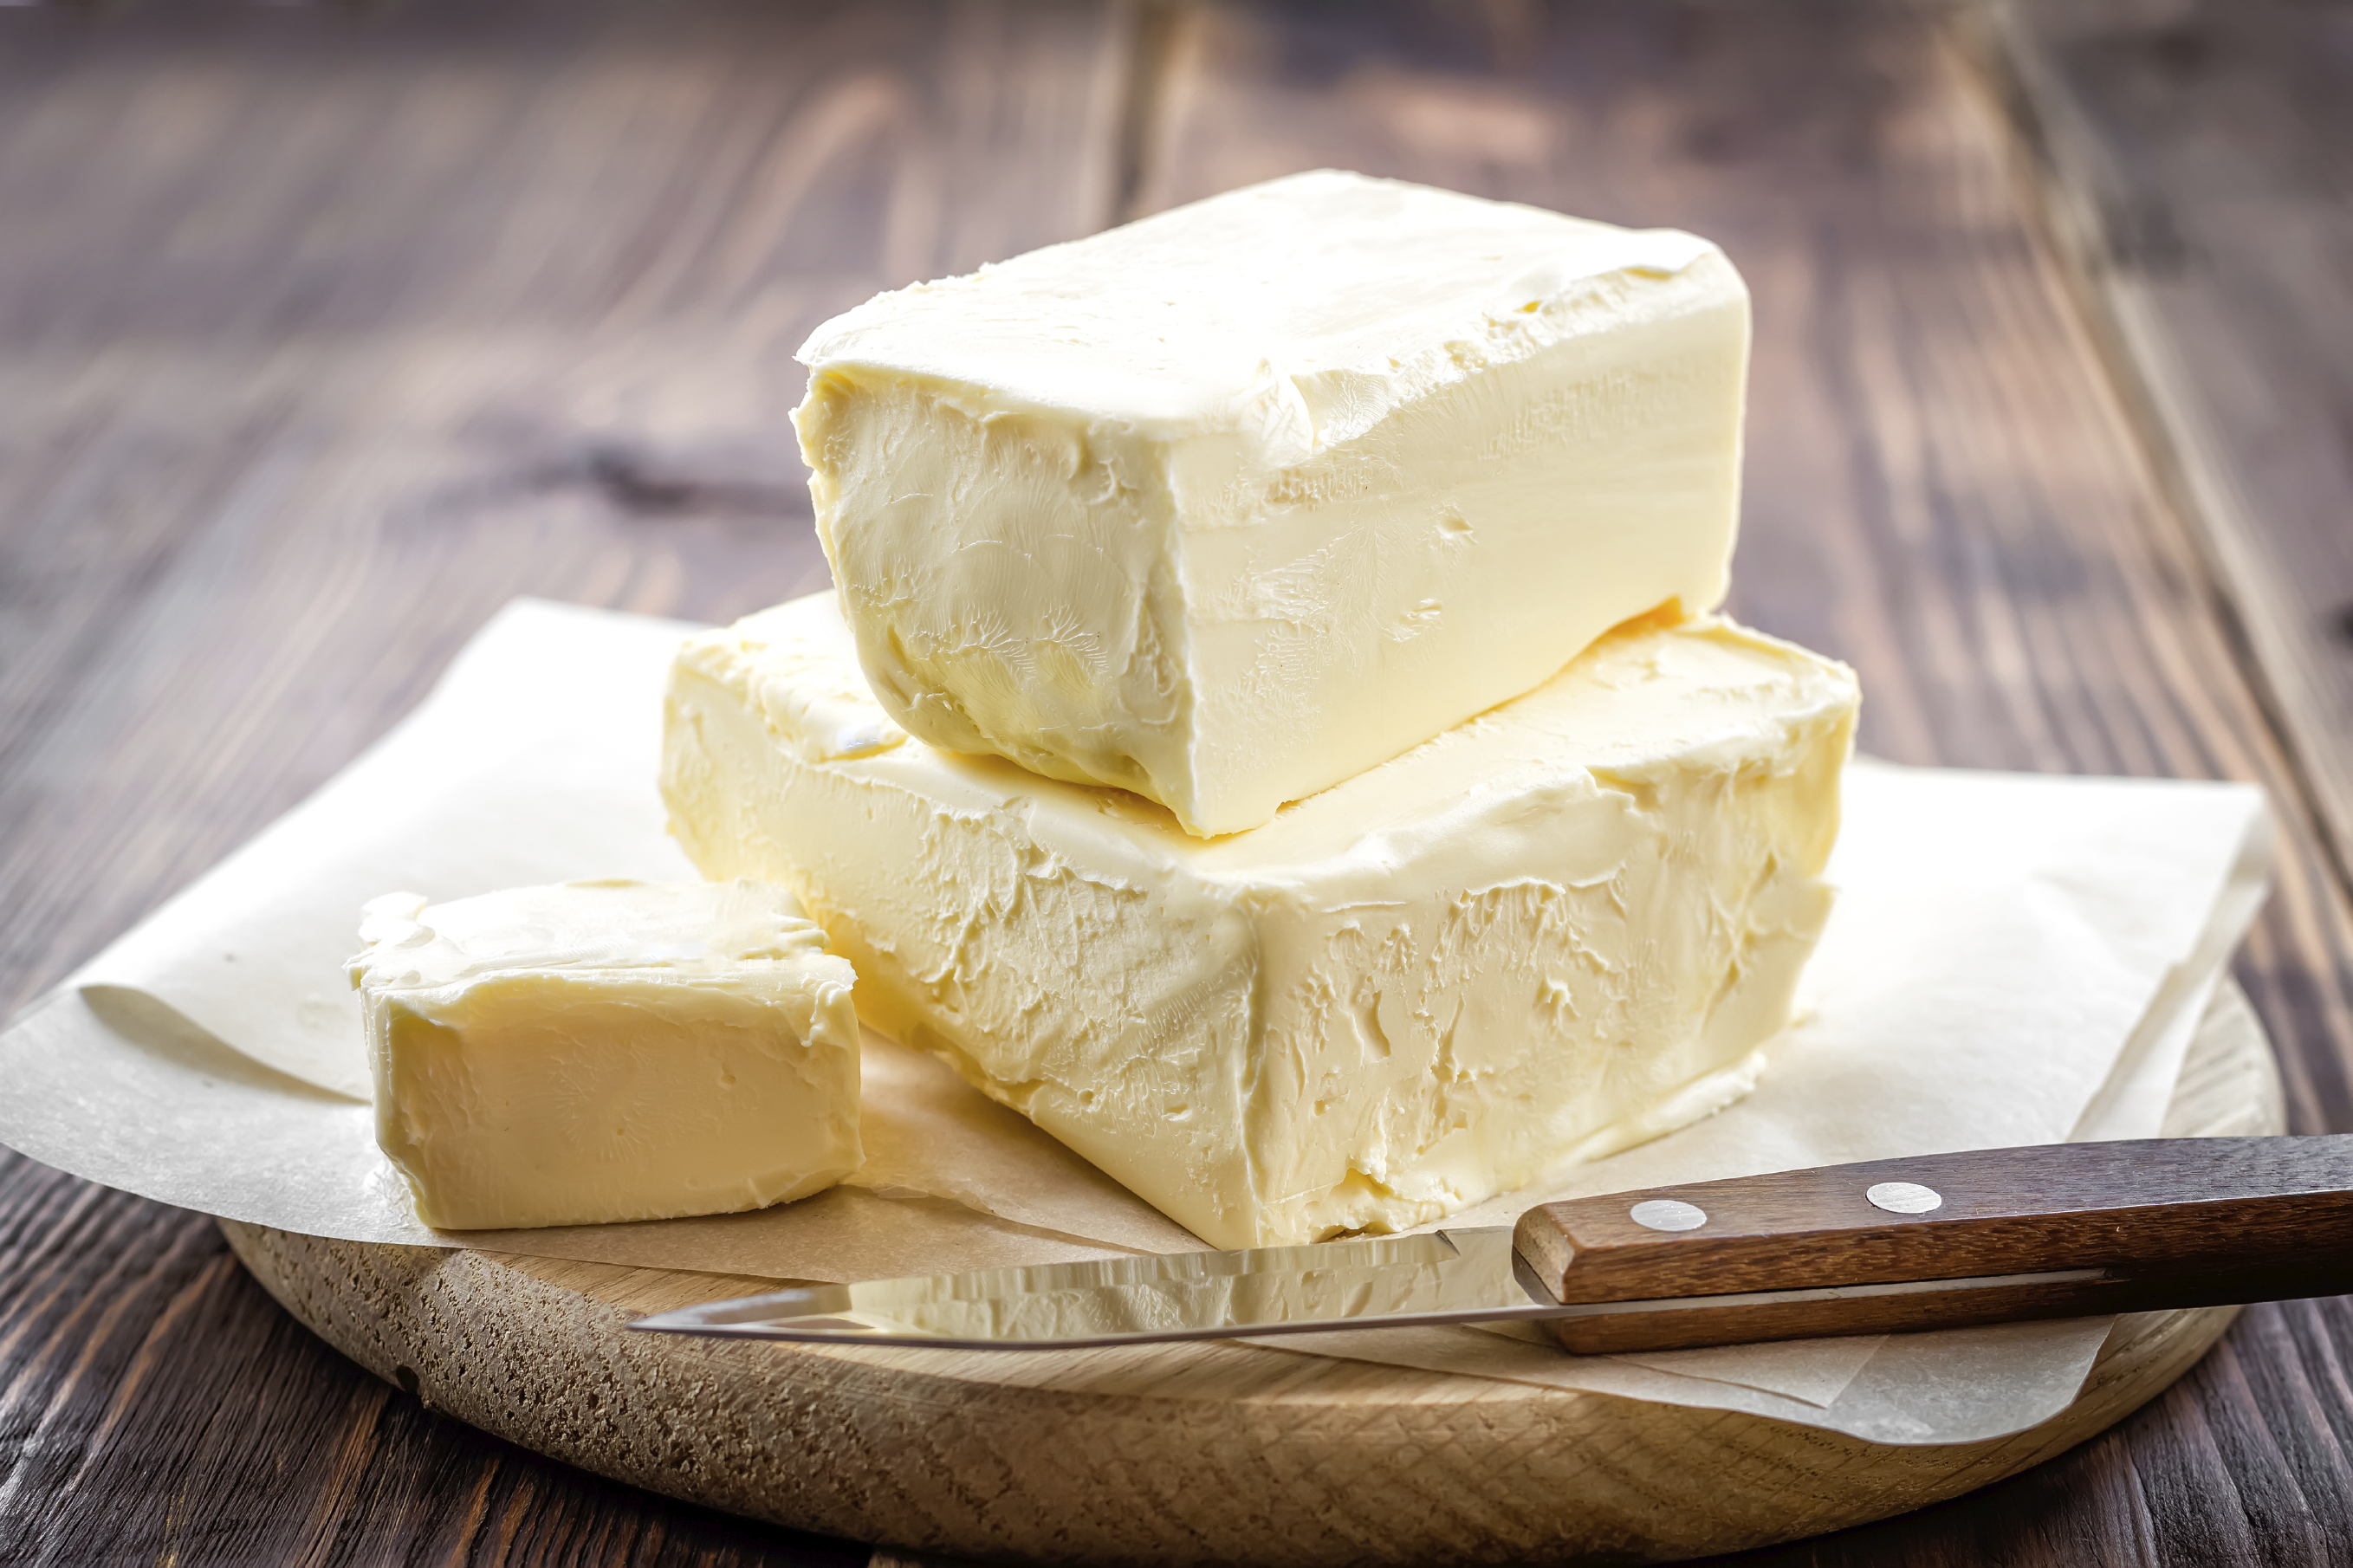 Science: Grass-Fed Butter Eaters Have Fewer Heart Attacks